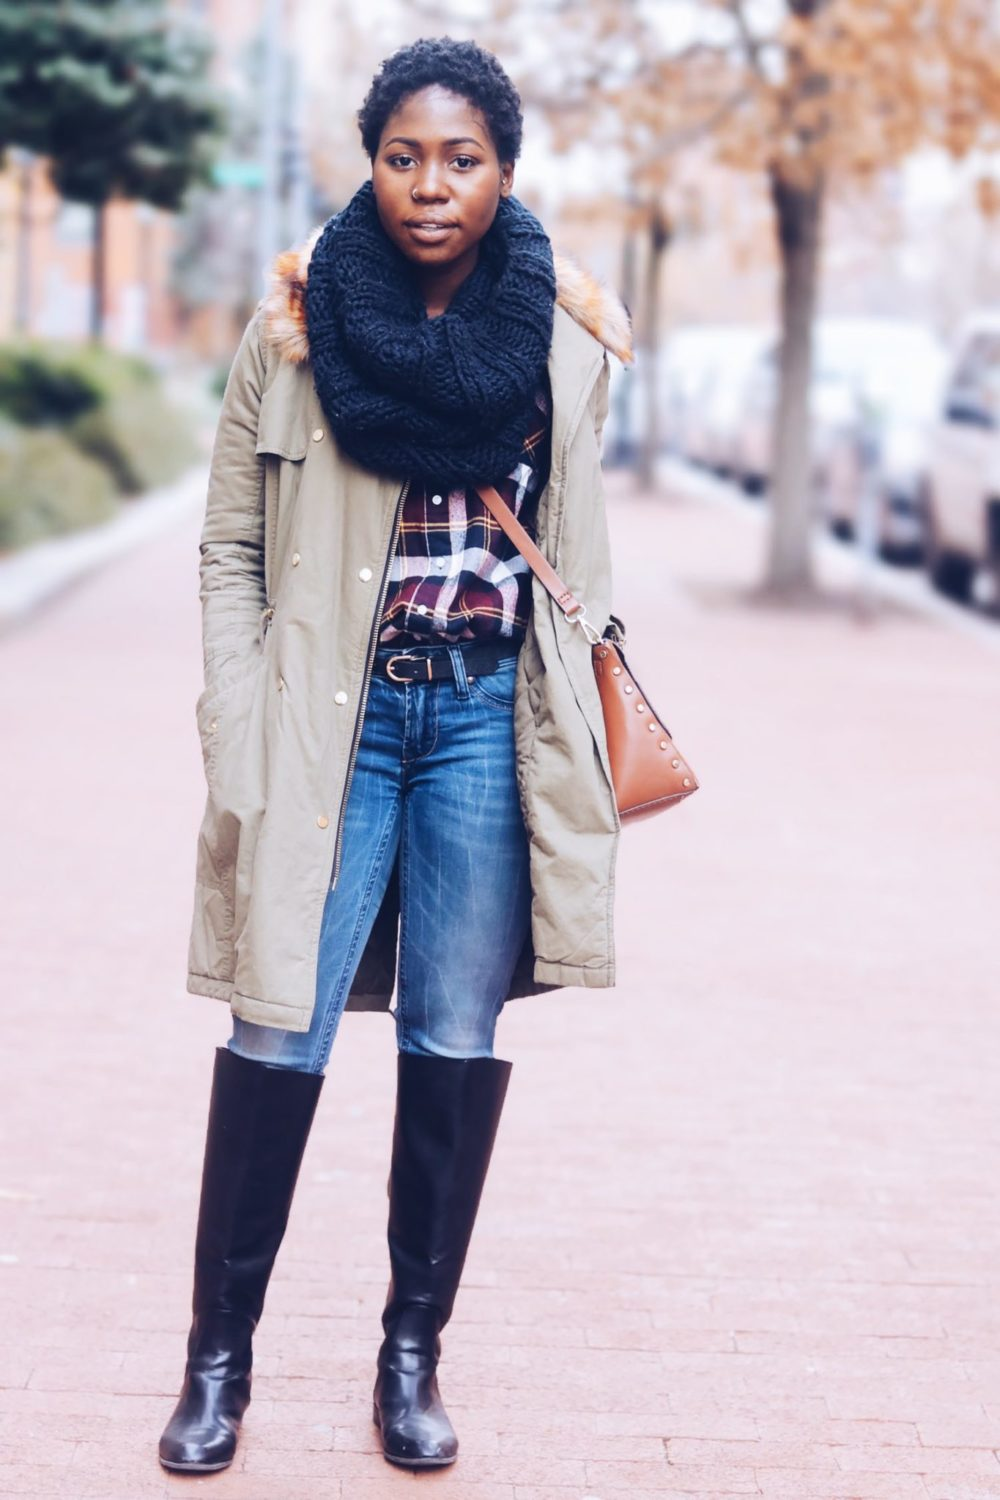 style-synopsis-winter-essentials